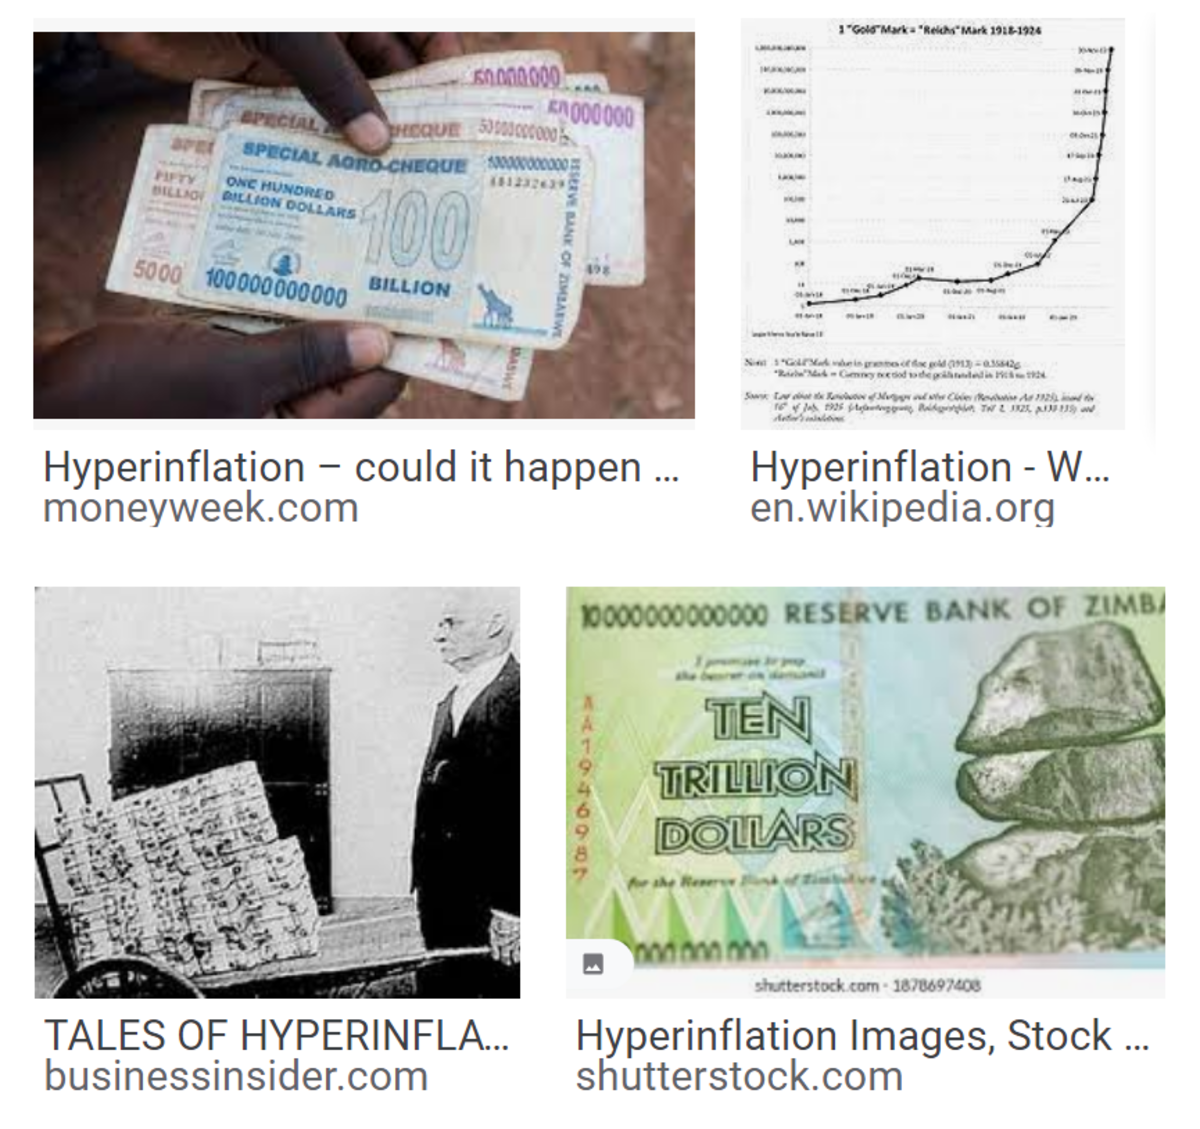 Hyperinflation could it happen